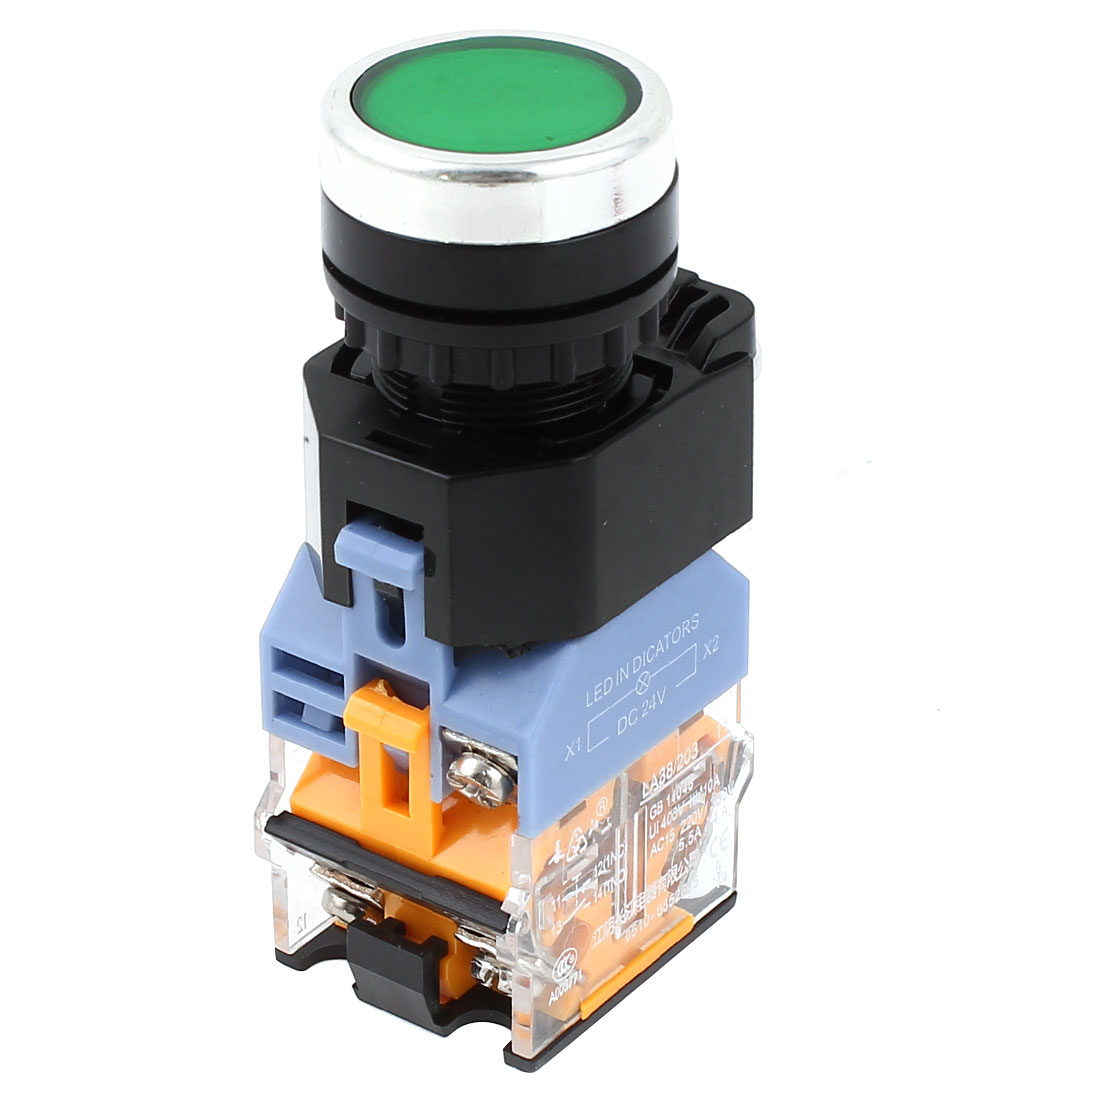 LA38/203 Green LED Indicator Lamp DPST NO+NC Momentary Push Button Switch Ui 400V Ith 10A